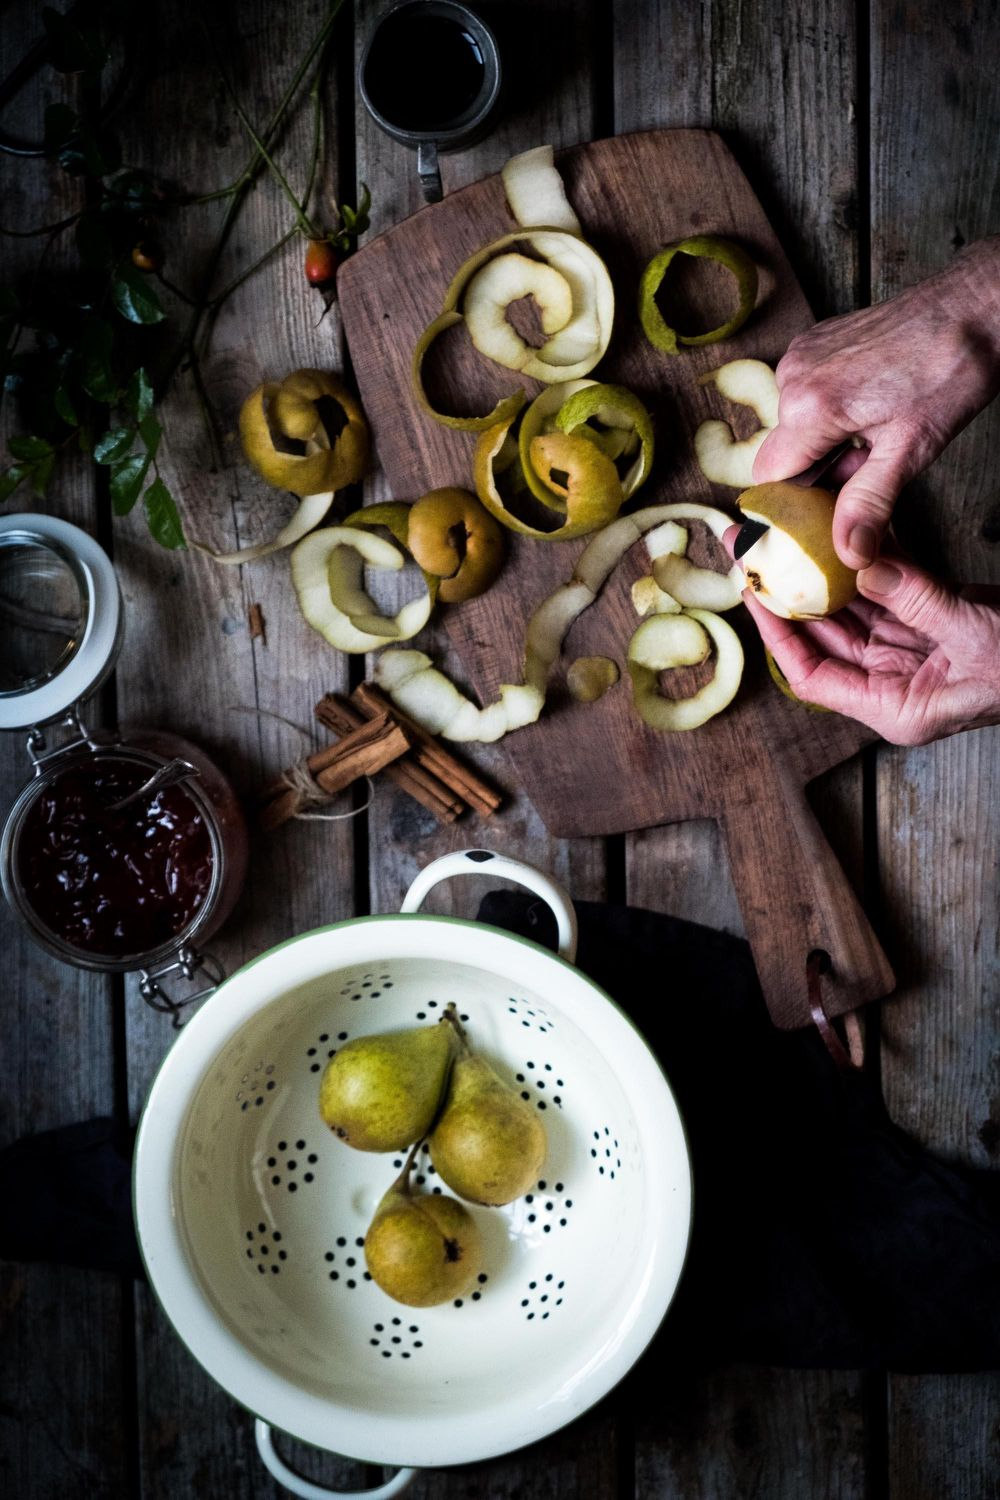 Mothers poached pears - image 2 - student project